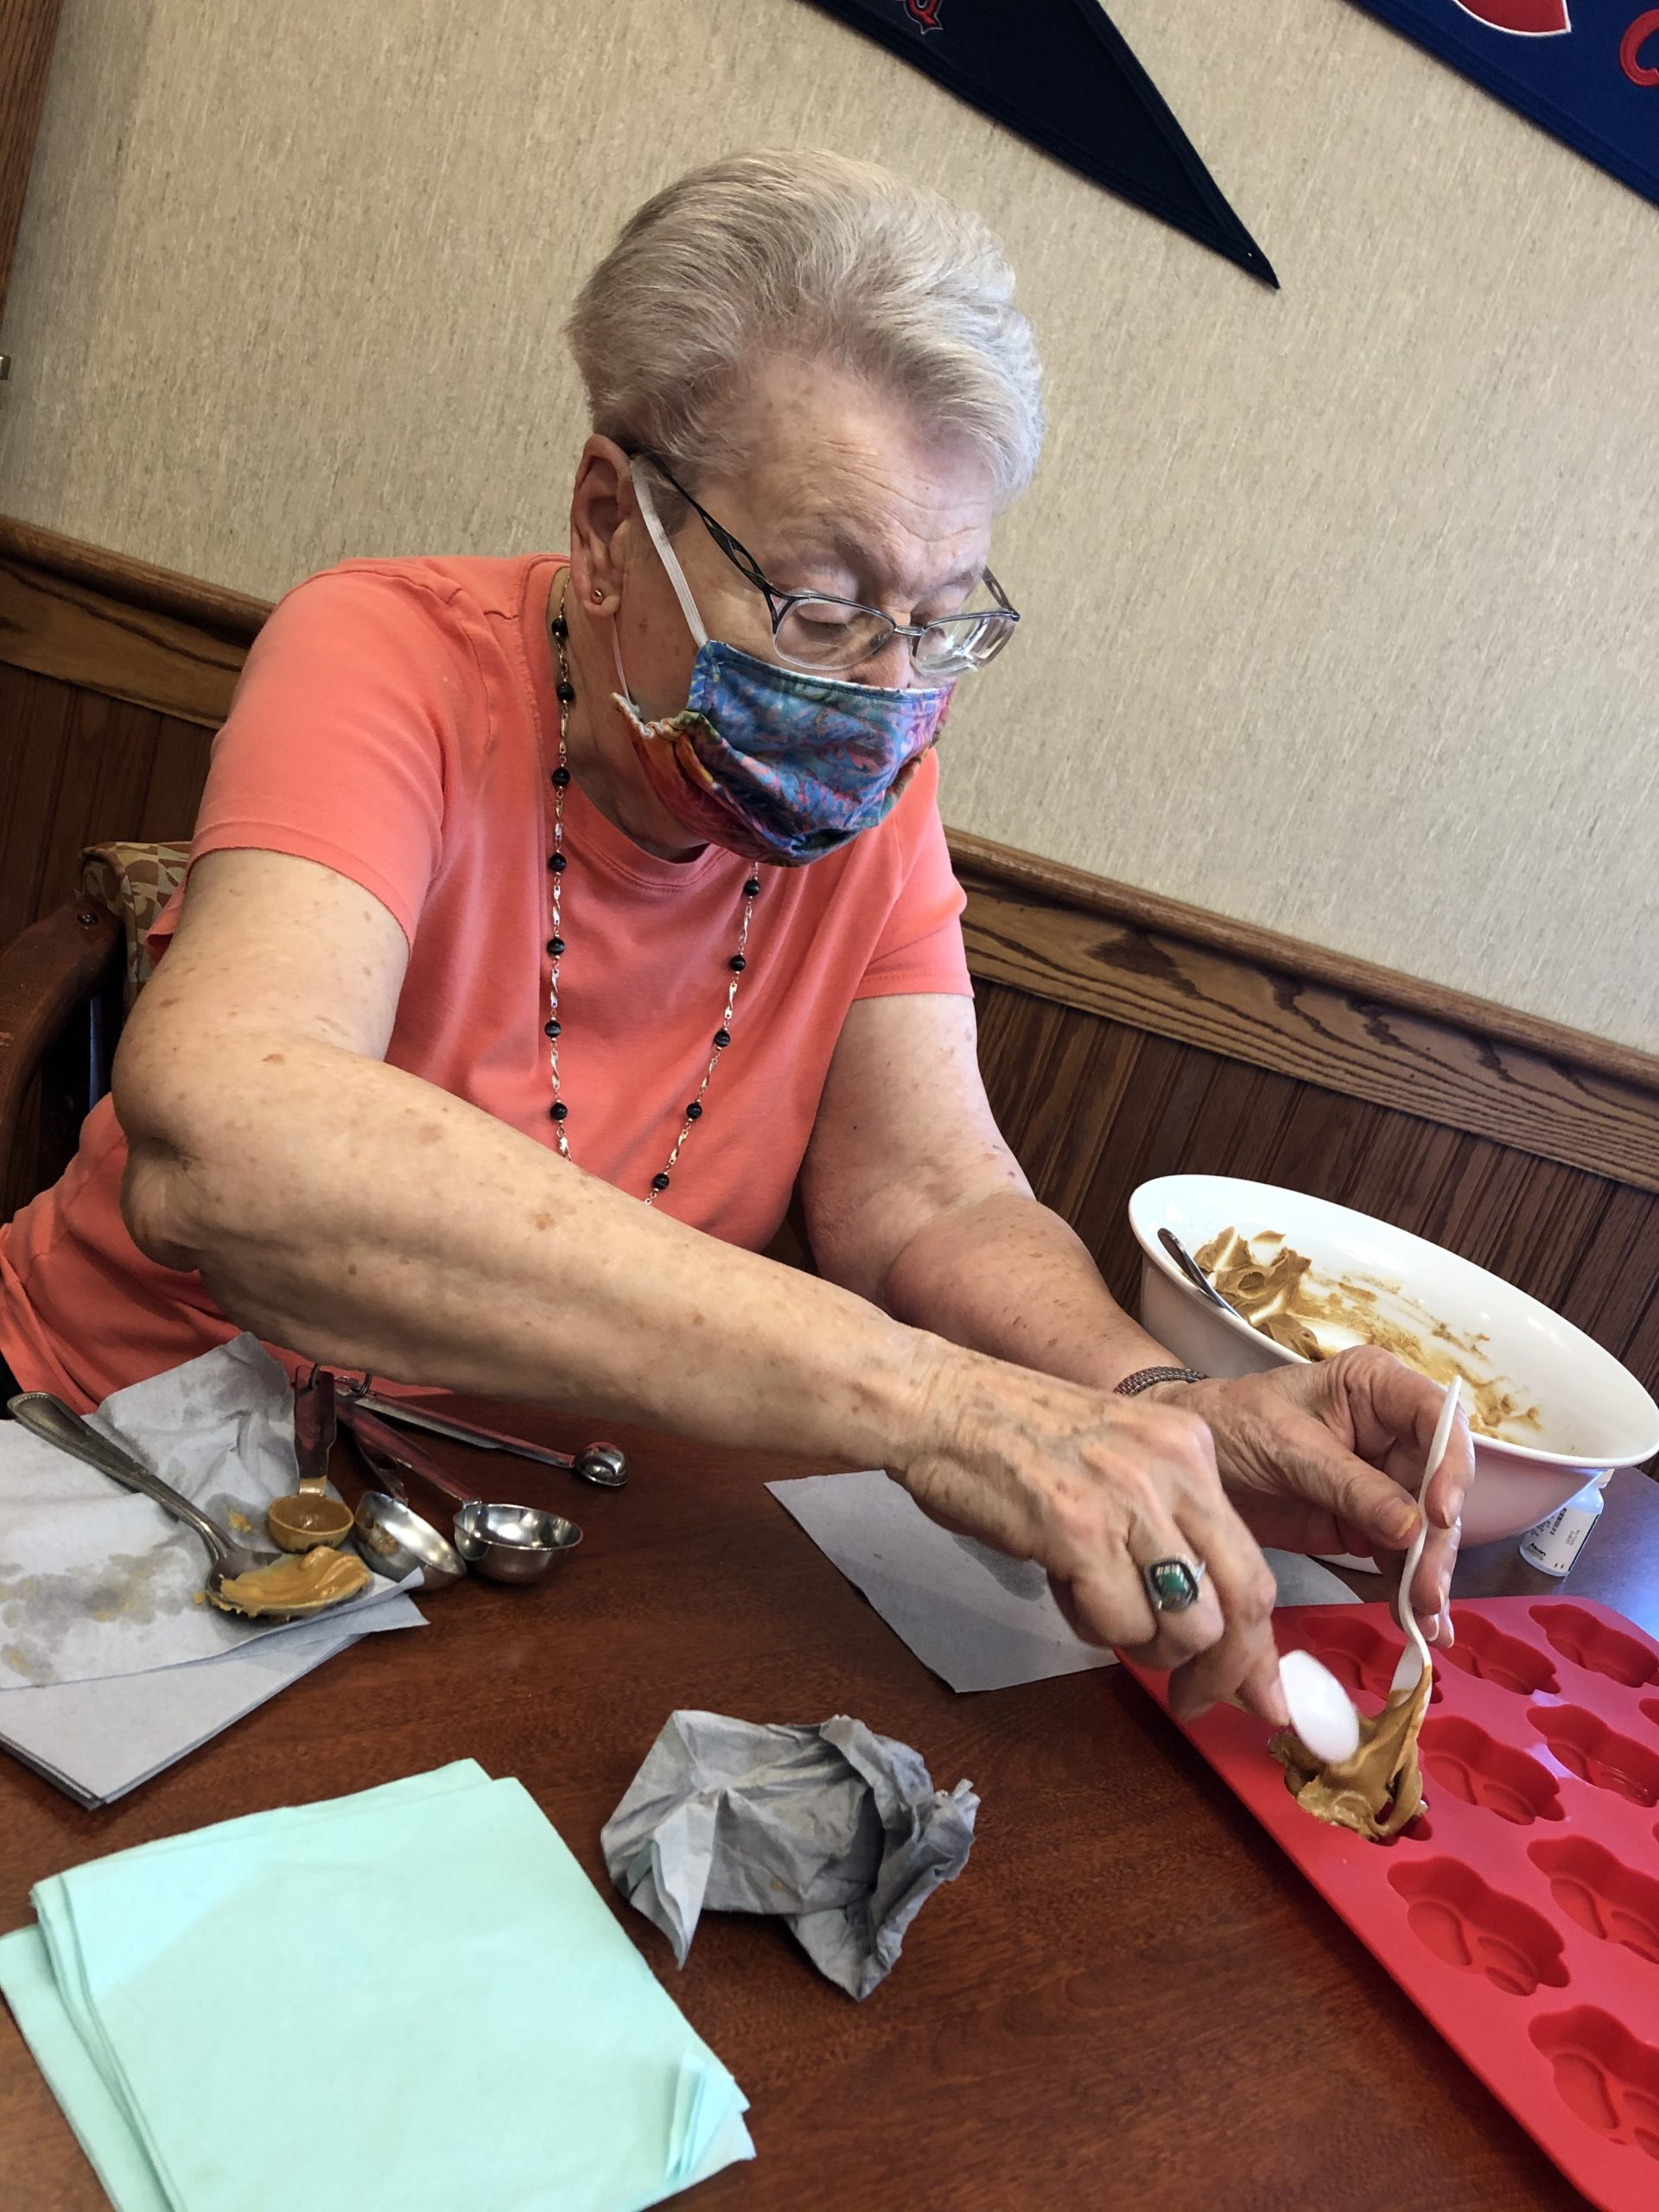 Linda whipped up some tasty treats for our furry friends at the shelter